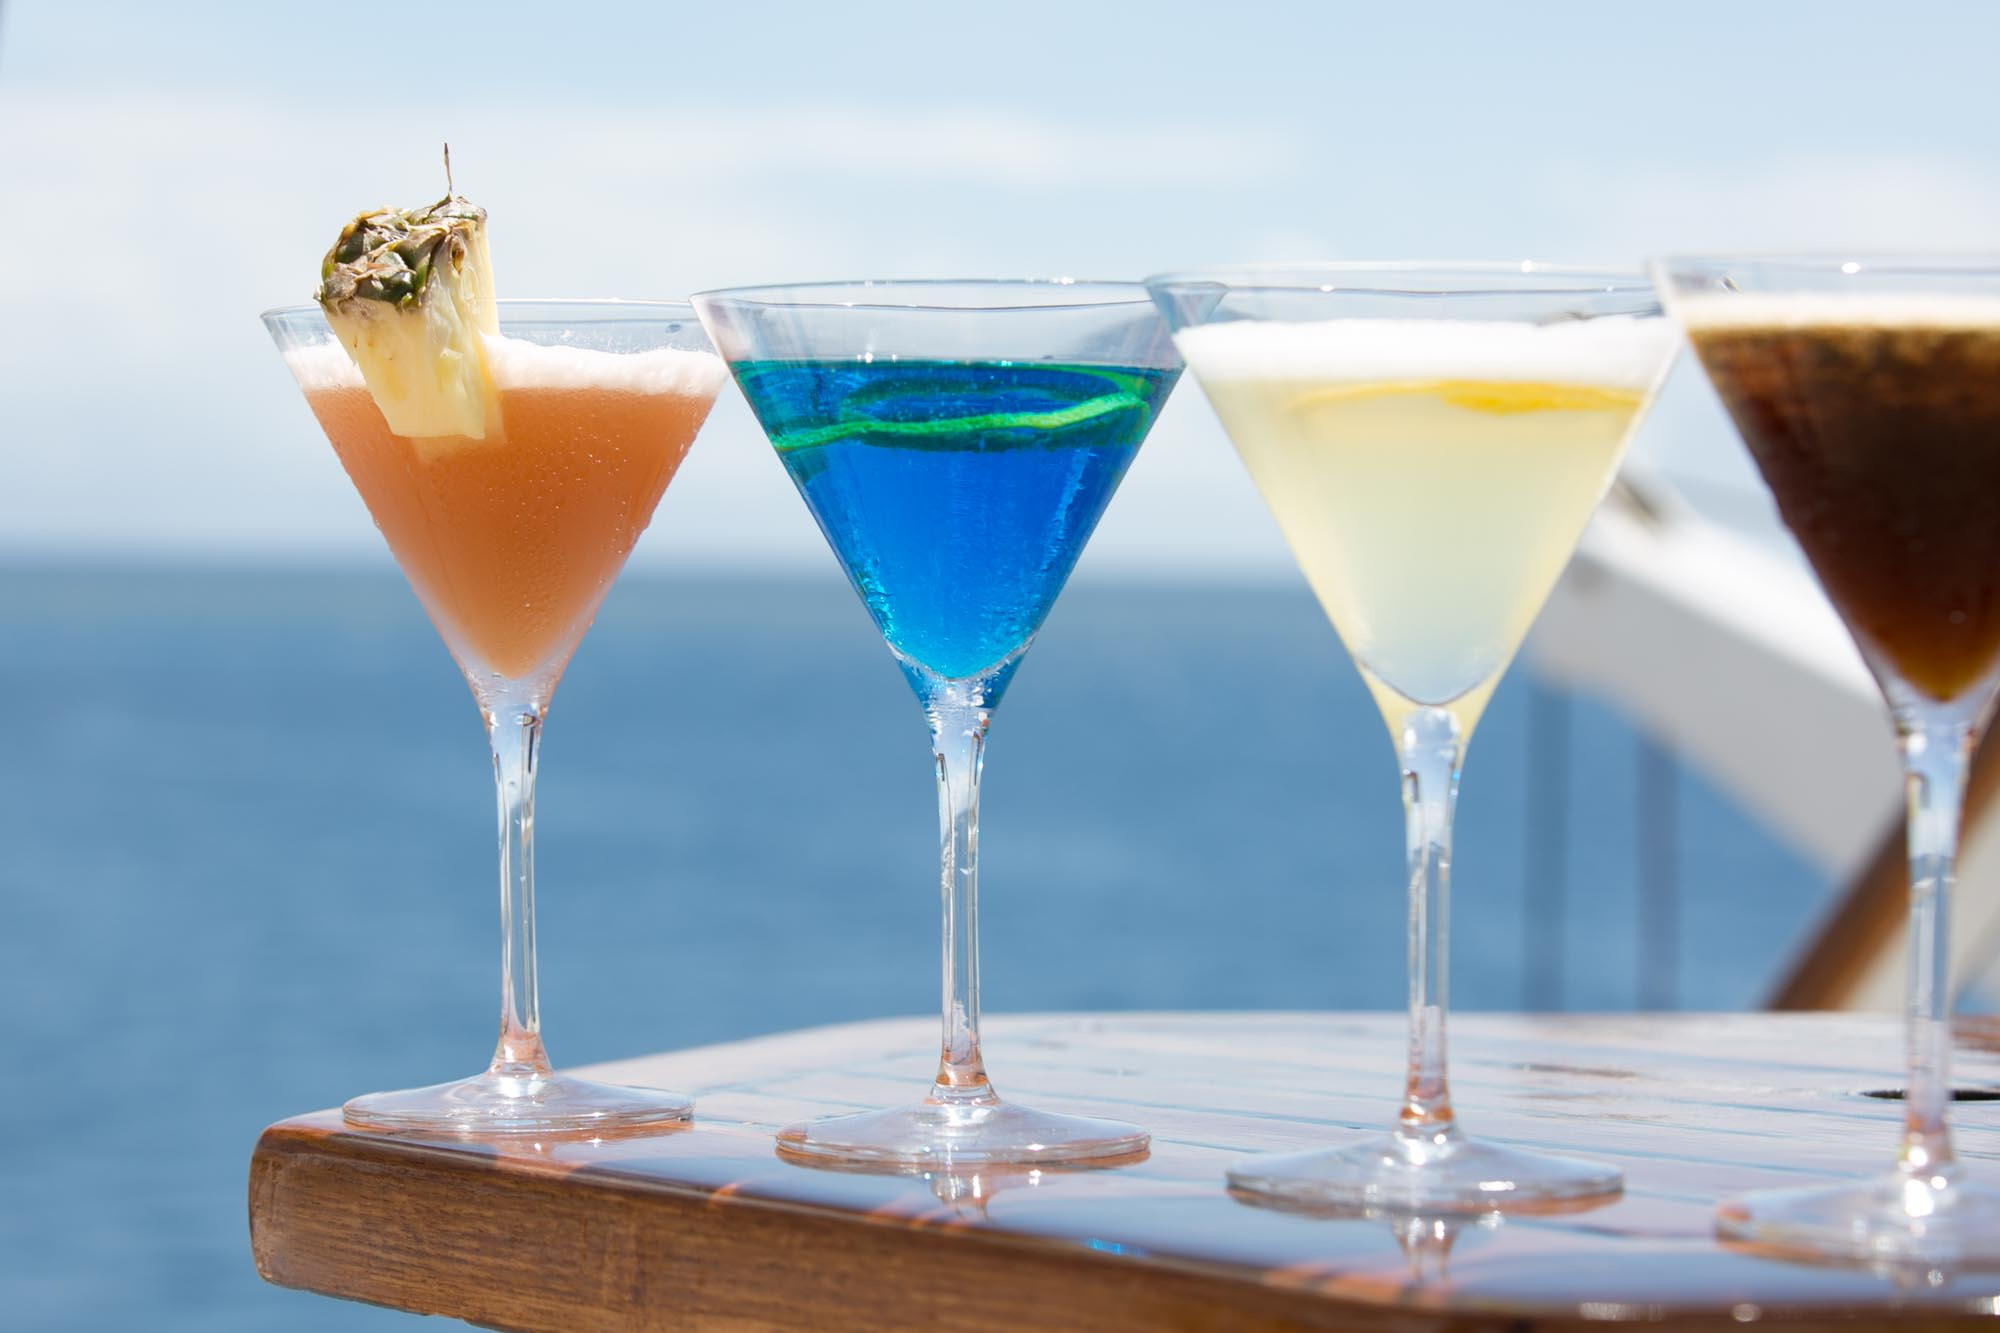 Wind Surf cocktails